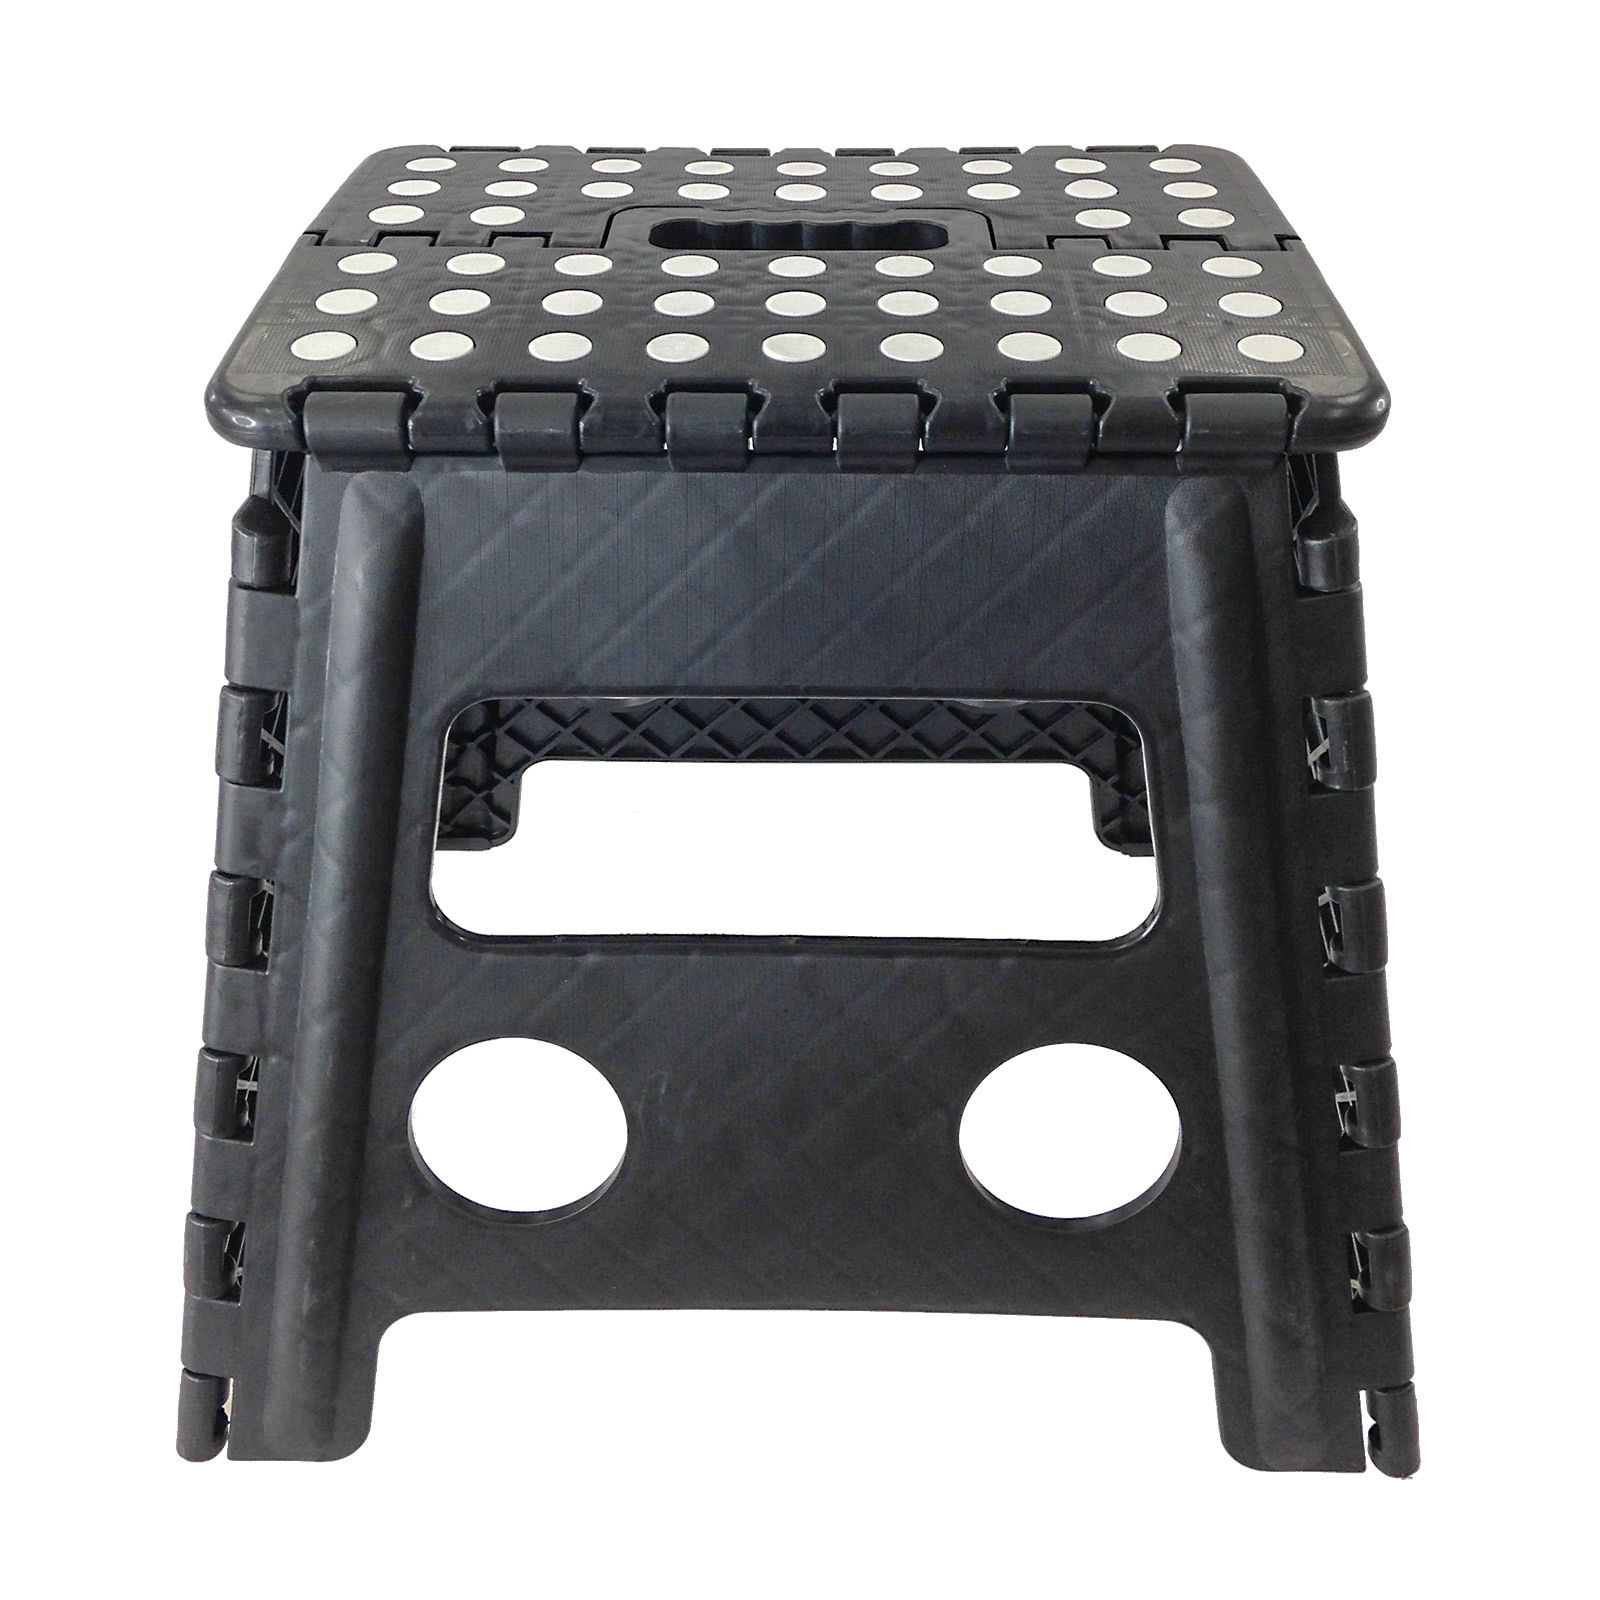 Easy Carry Folding Step Stool / Seat With Anti Slip Surface Kids / Home    Black